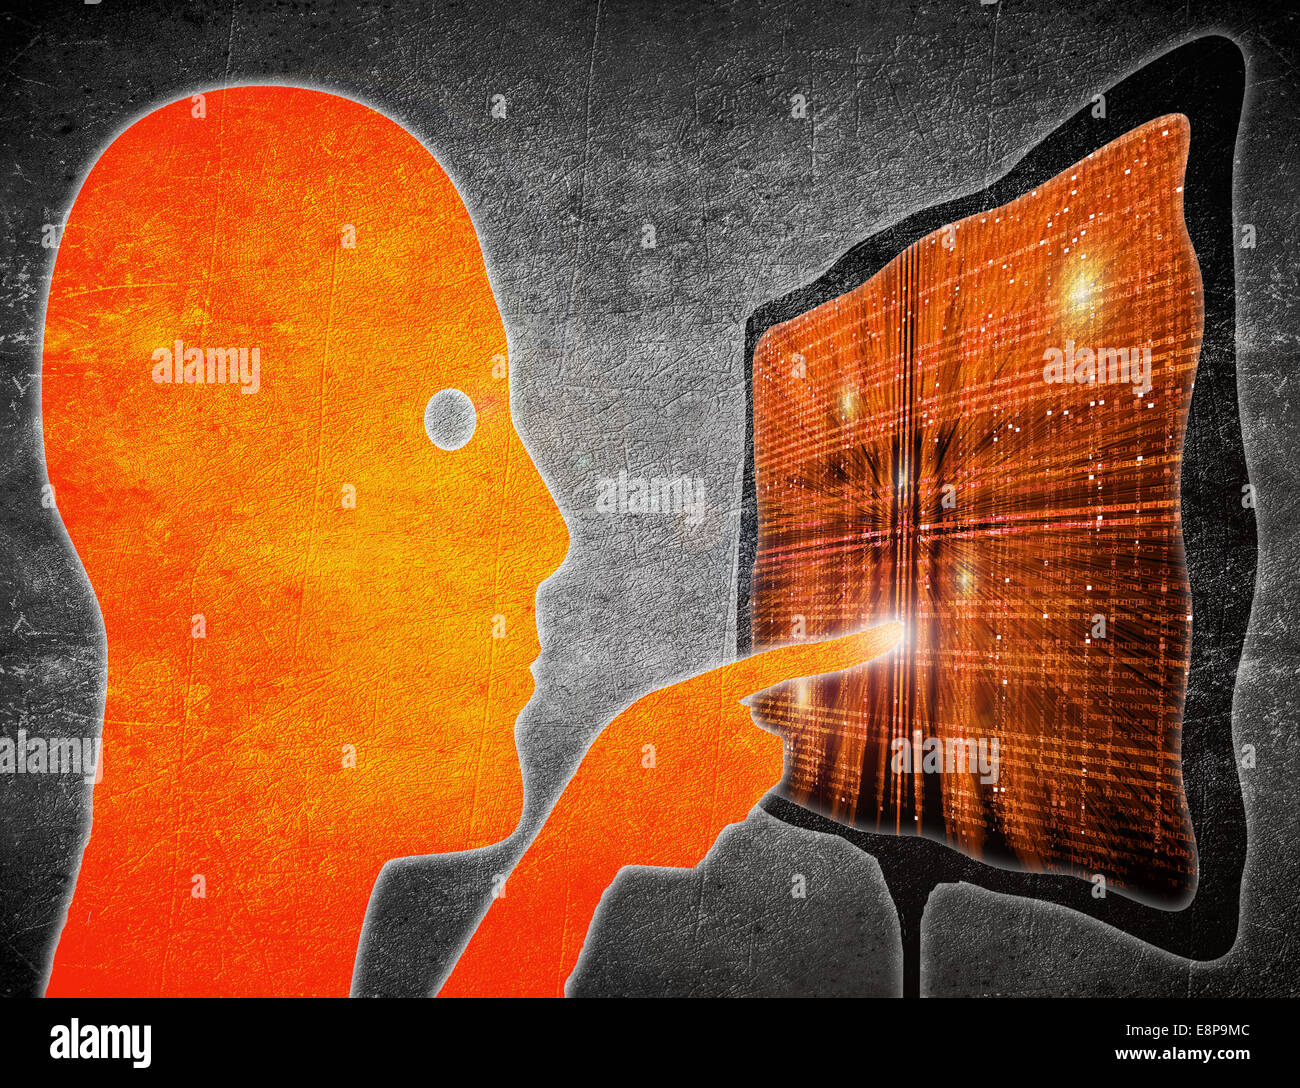 man touching touchscreen orange on black digital illustration - Stock Image